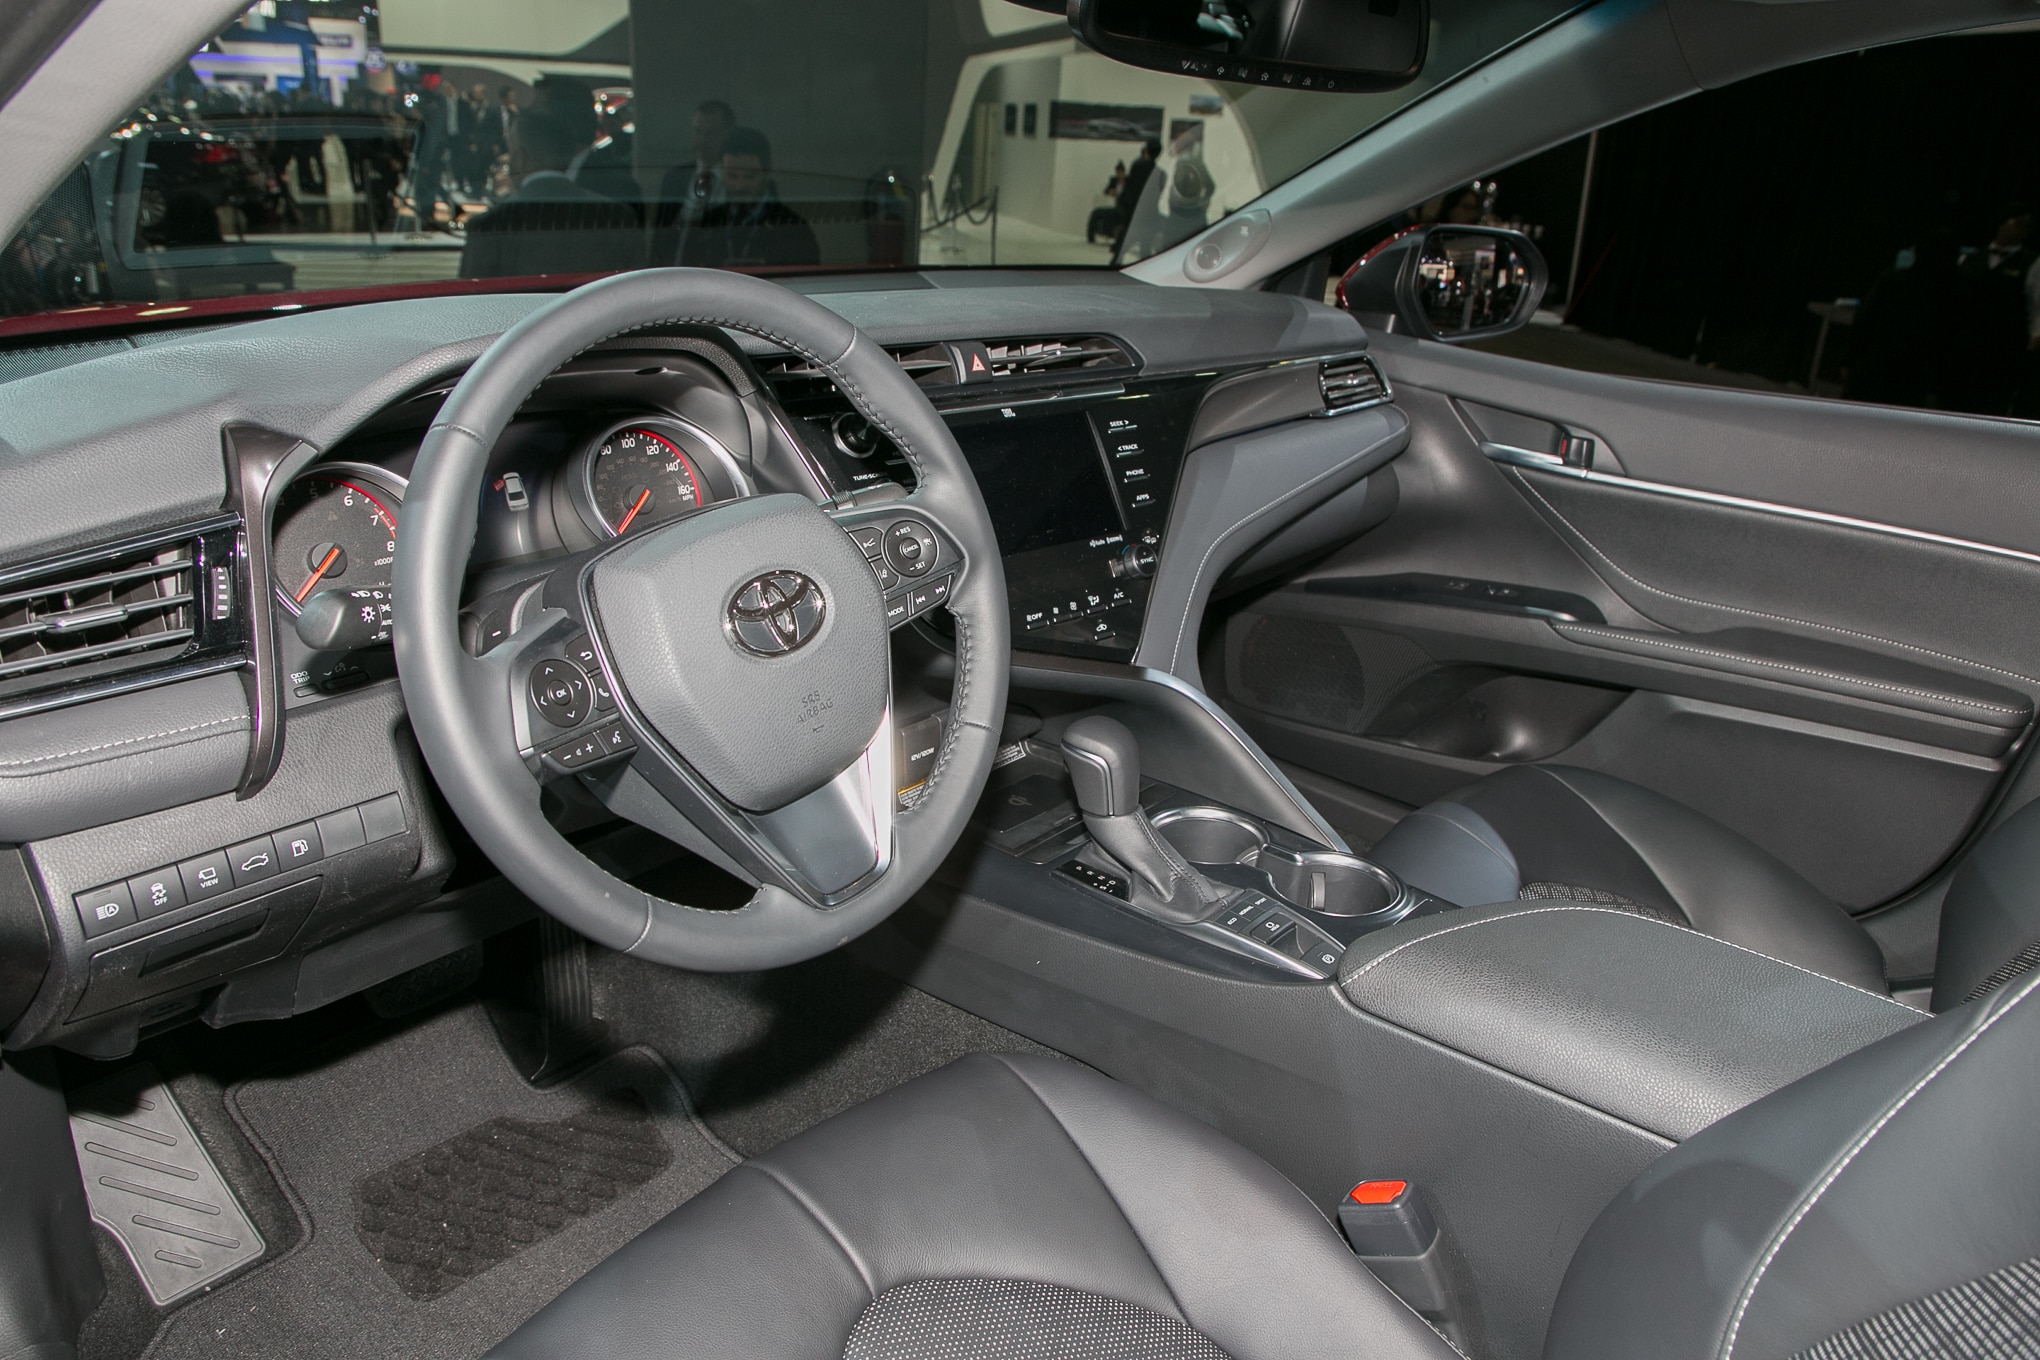 2018 toyota interior.  2018 09 on 2018 toyota interior t